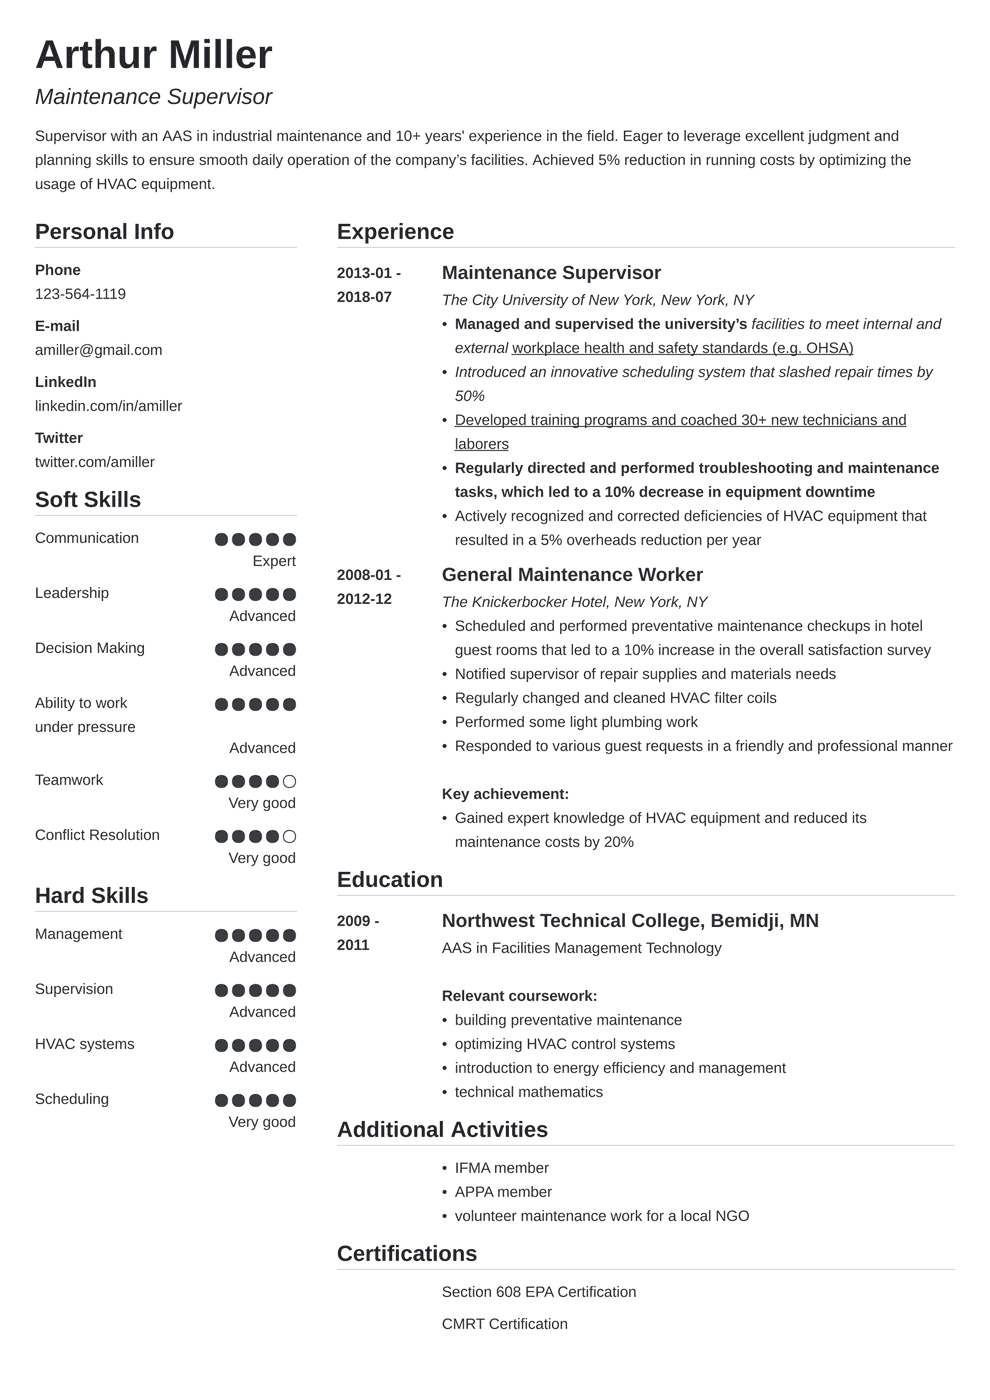 Maintenance Resume Examples for a Worker & Supervisor